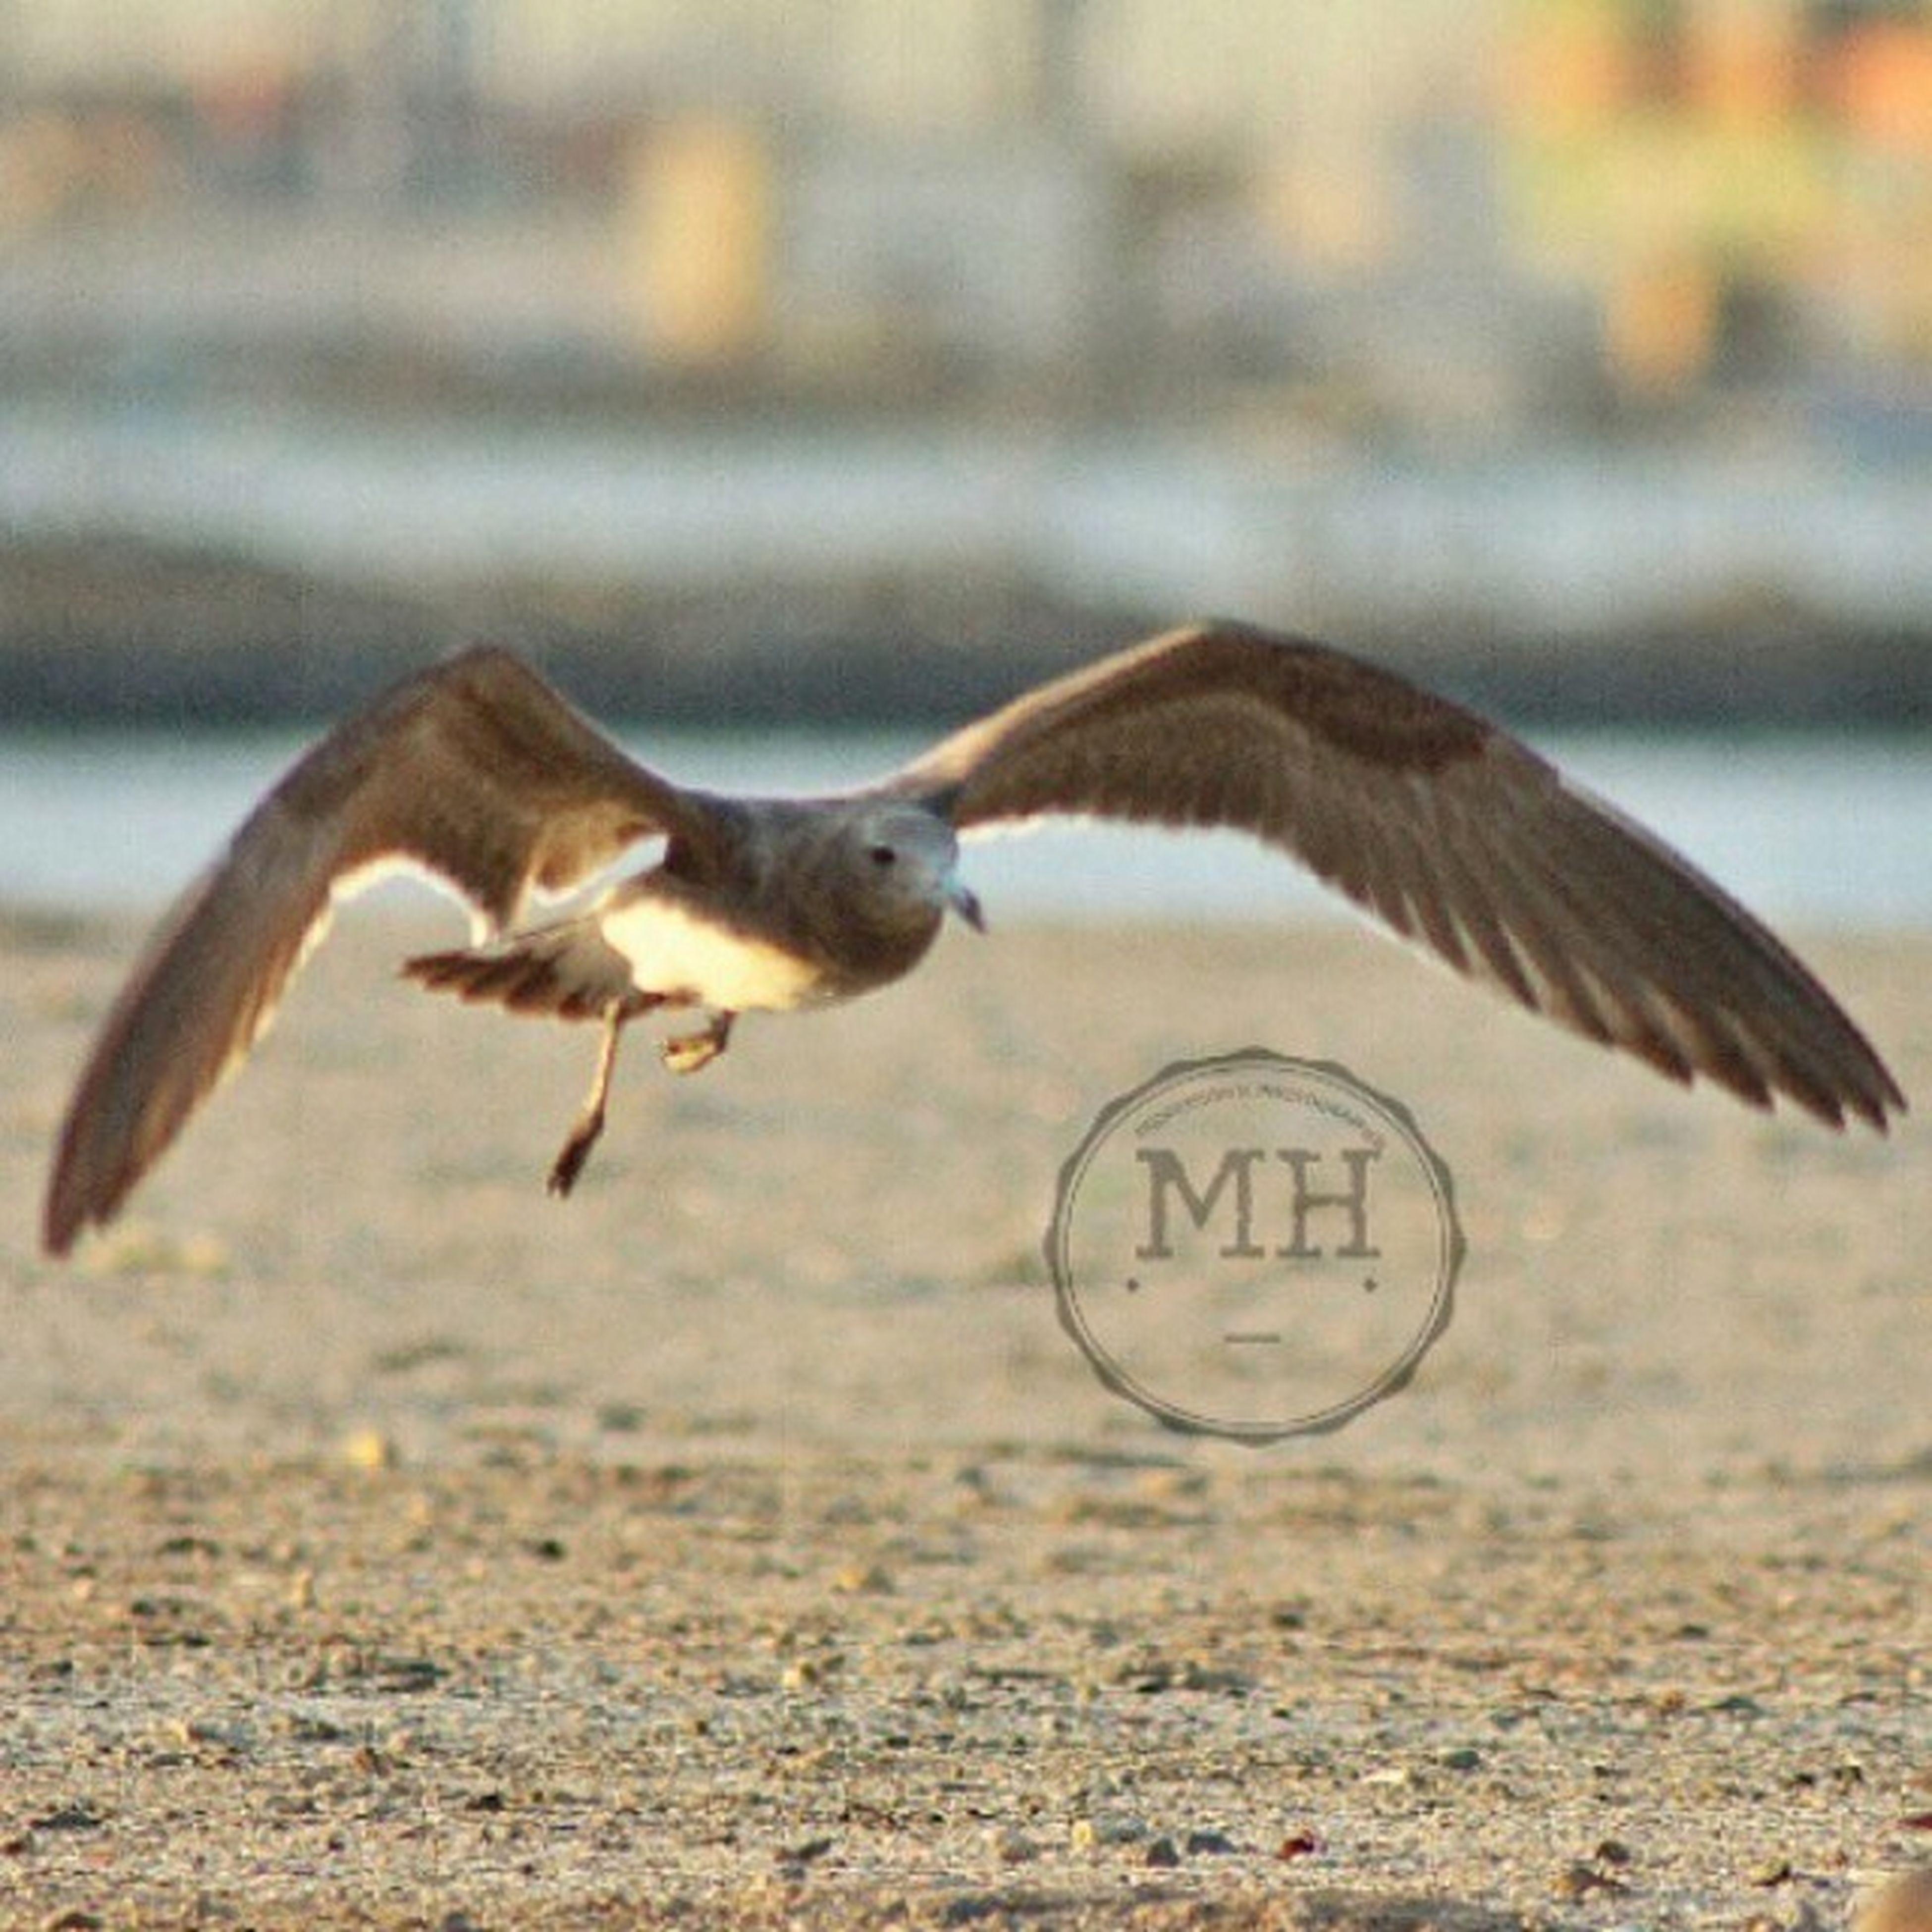 animal themes, animals in the wild, bird, one animal, wildlife, spread wings, focus on foreground, flying, side view, seagull, full length, mid-air, beach, nature, animal wing, sand, selective focus, outdoors, close-up, day